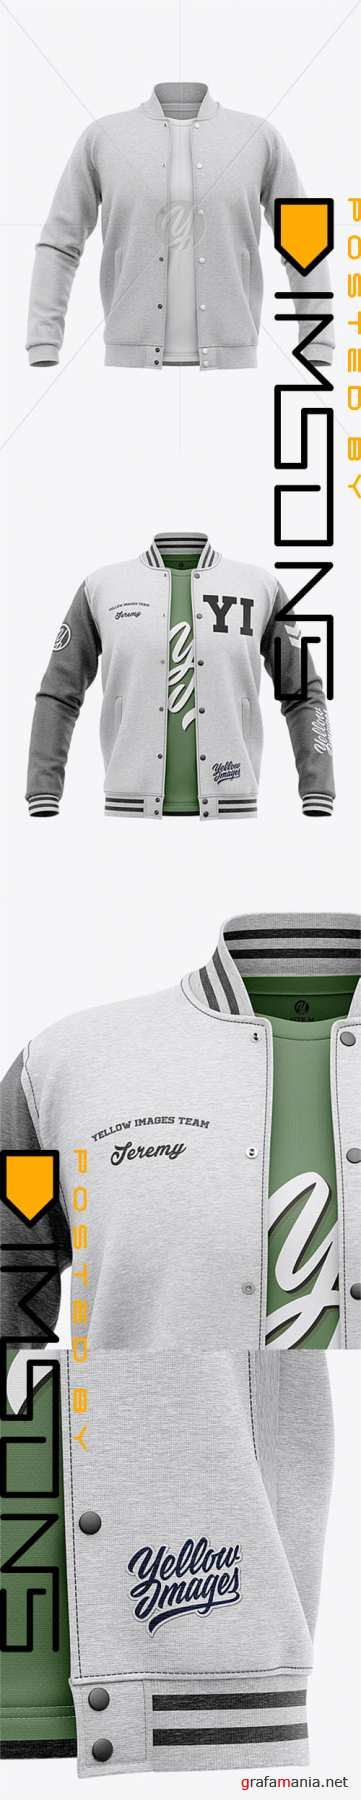 Open Heather Varsity Jacket Mockup - Front View 32393 TIF